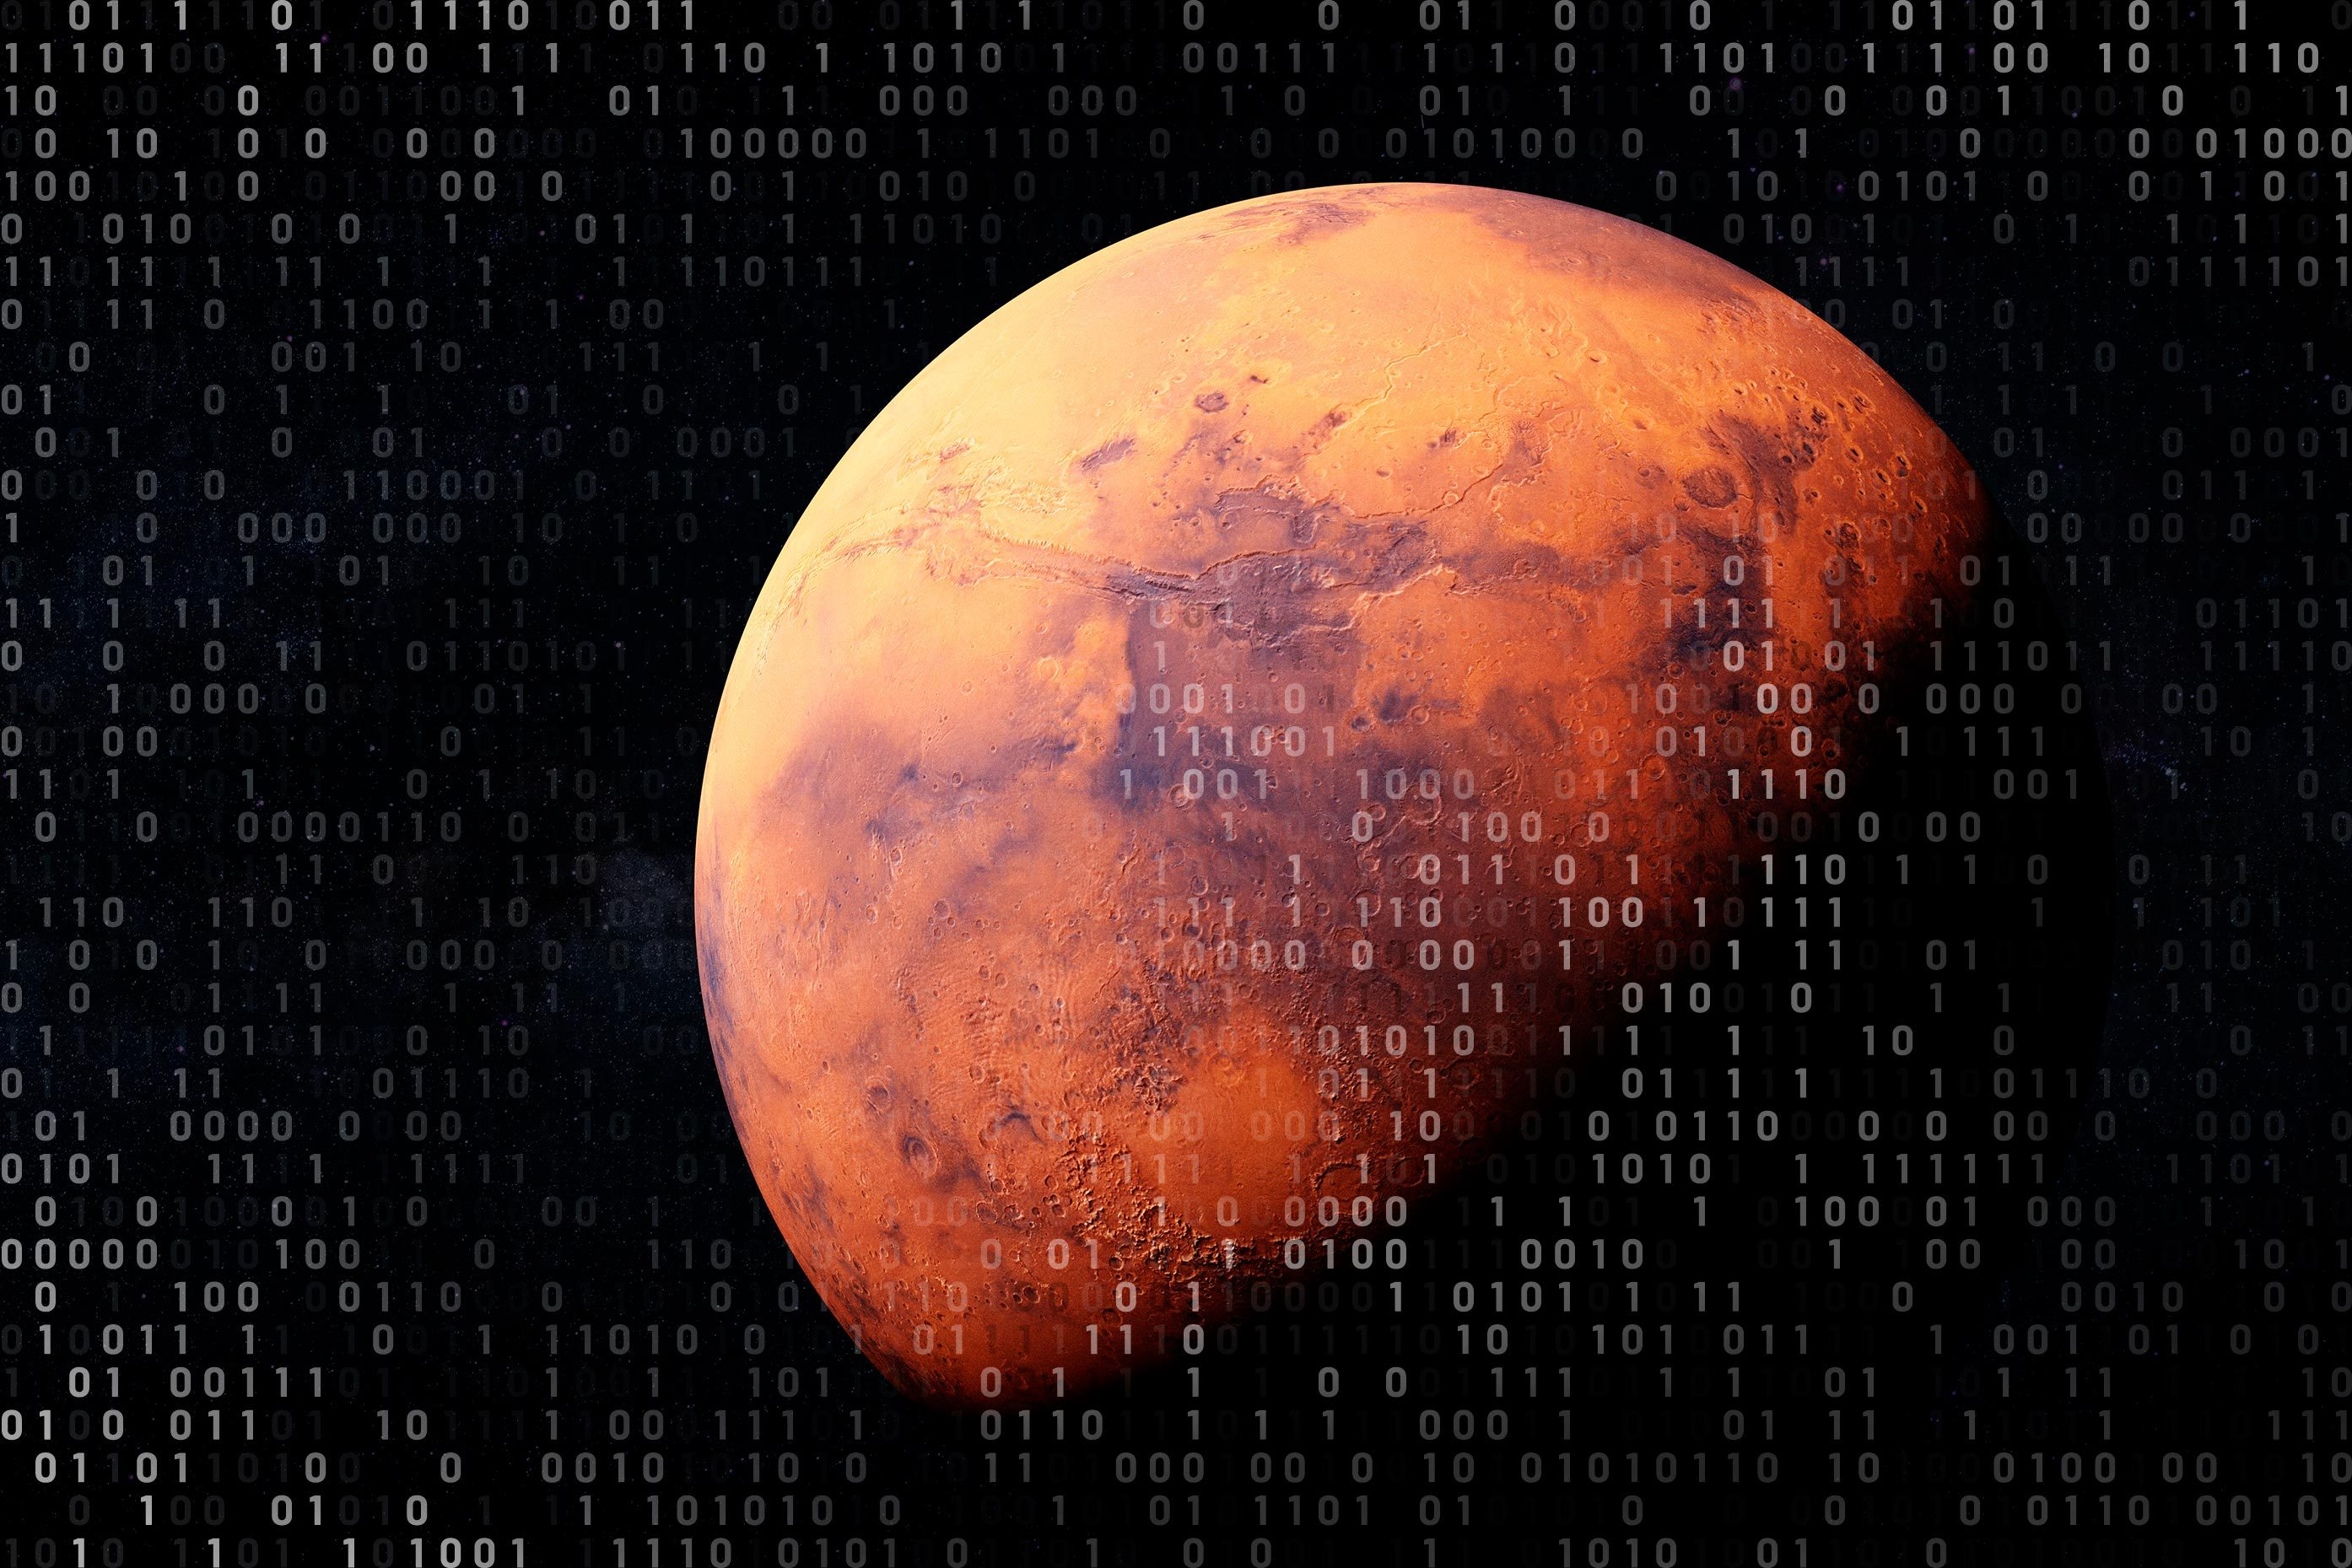 mars on black space background with computer code overlay